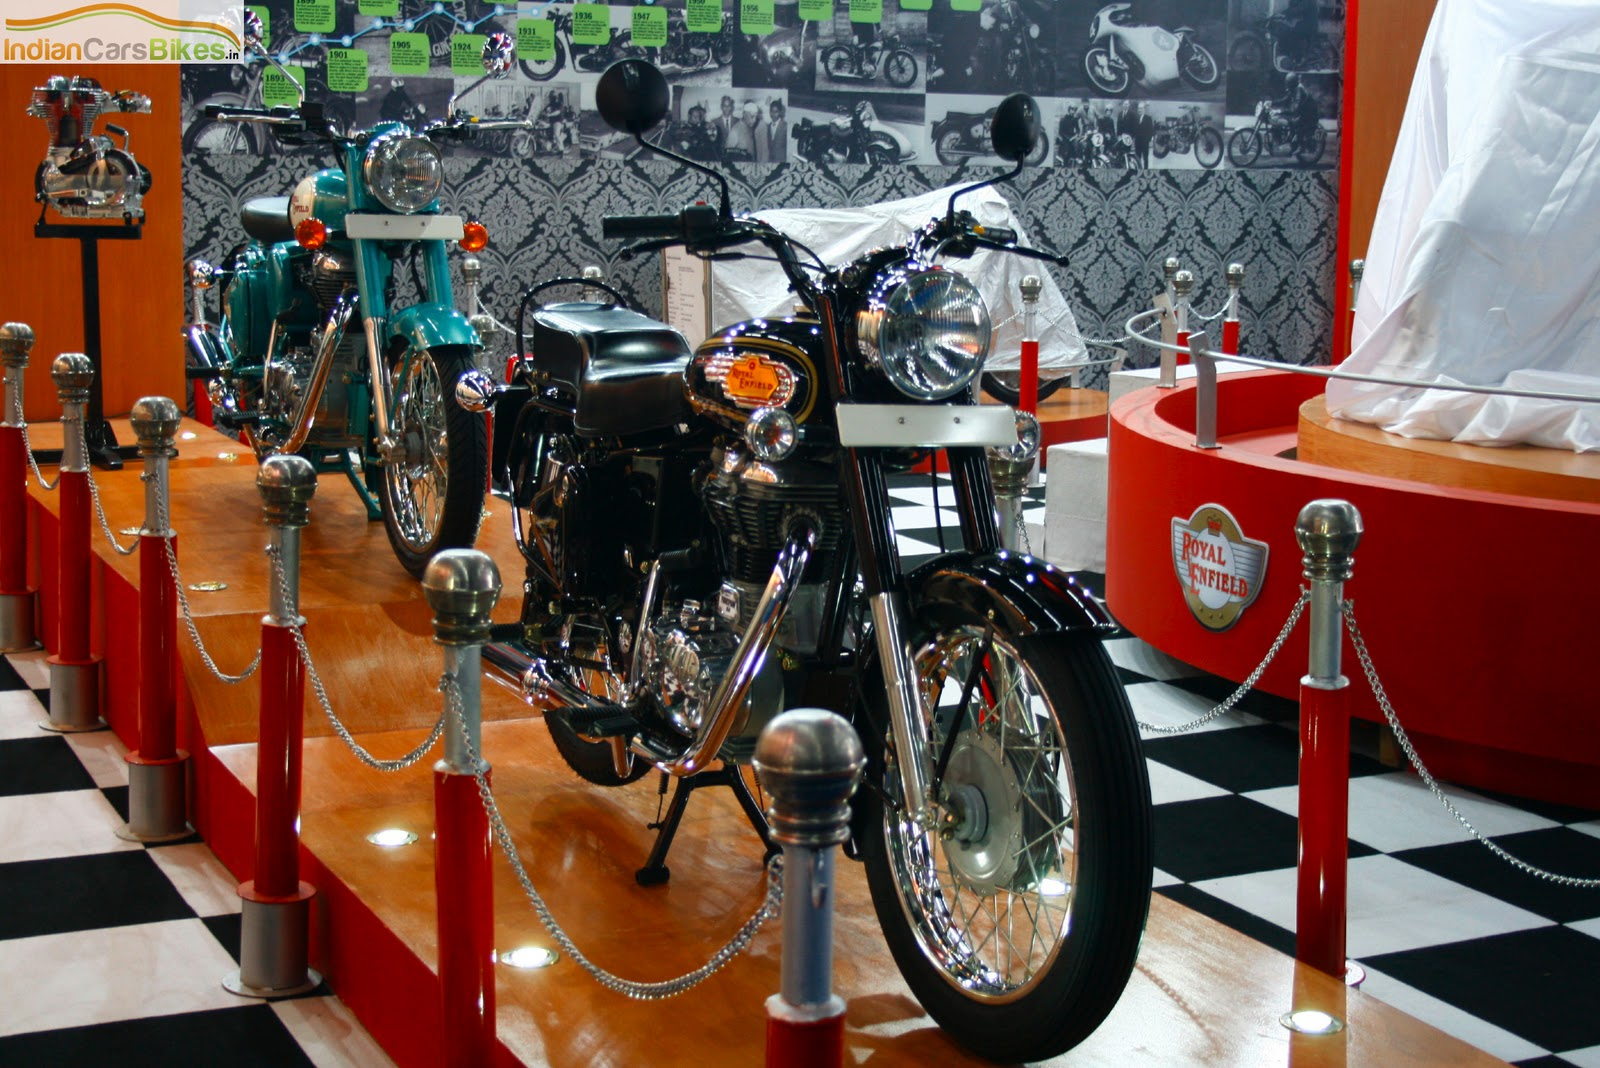 Enfield Bullet 350 UCE #10